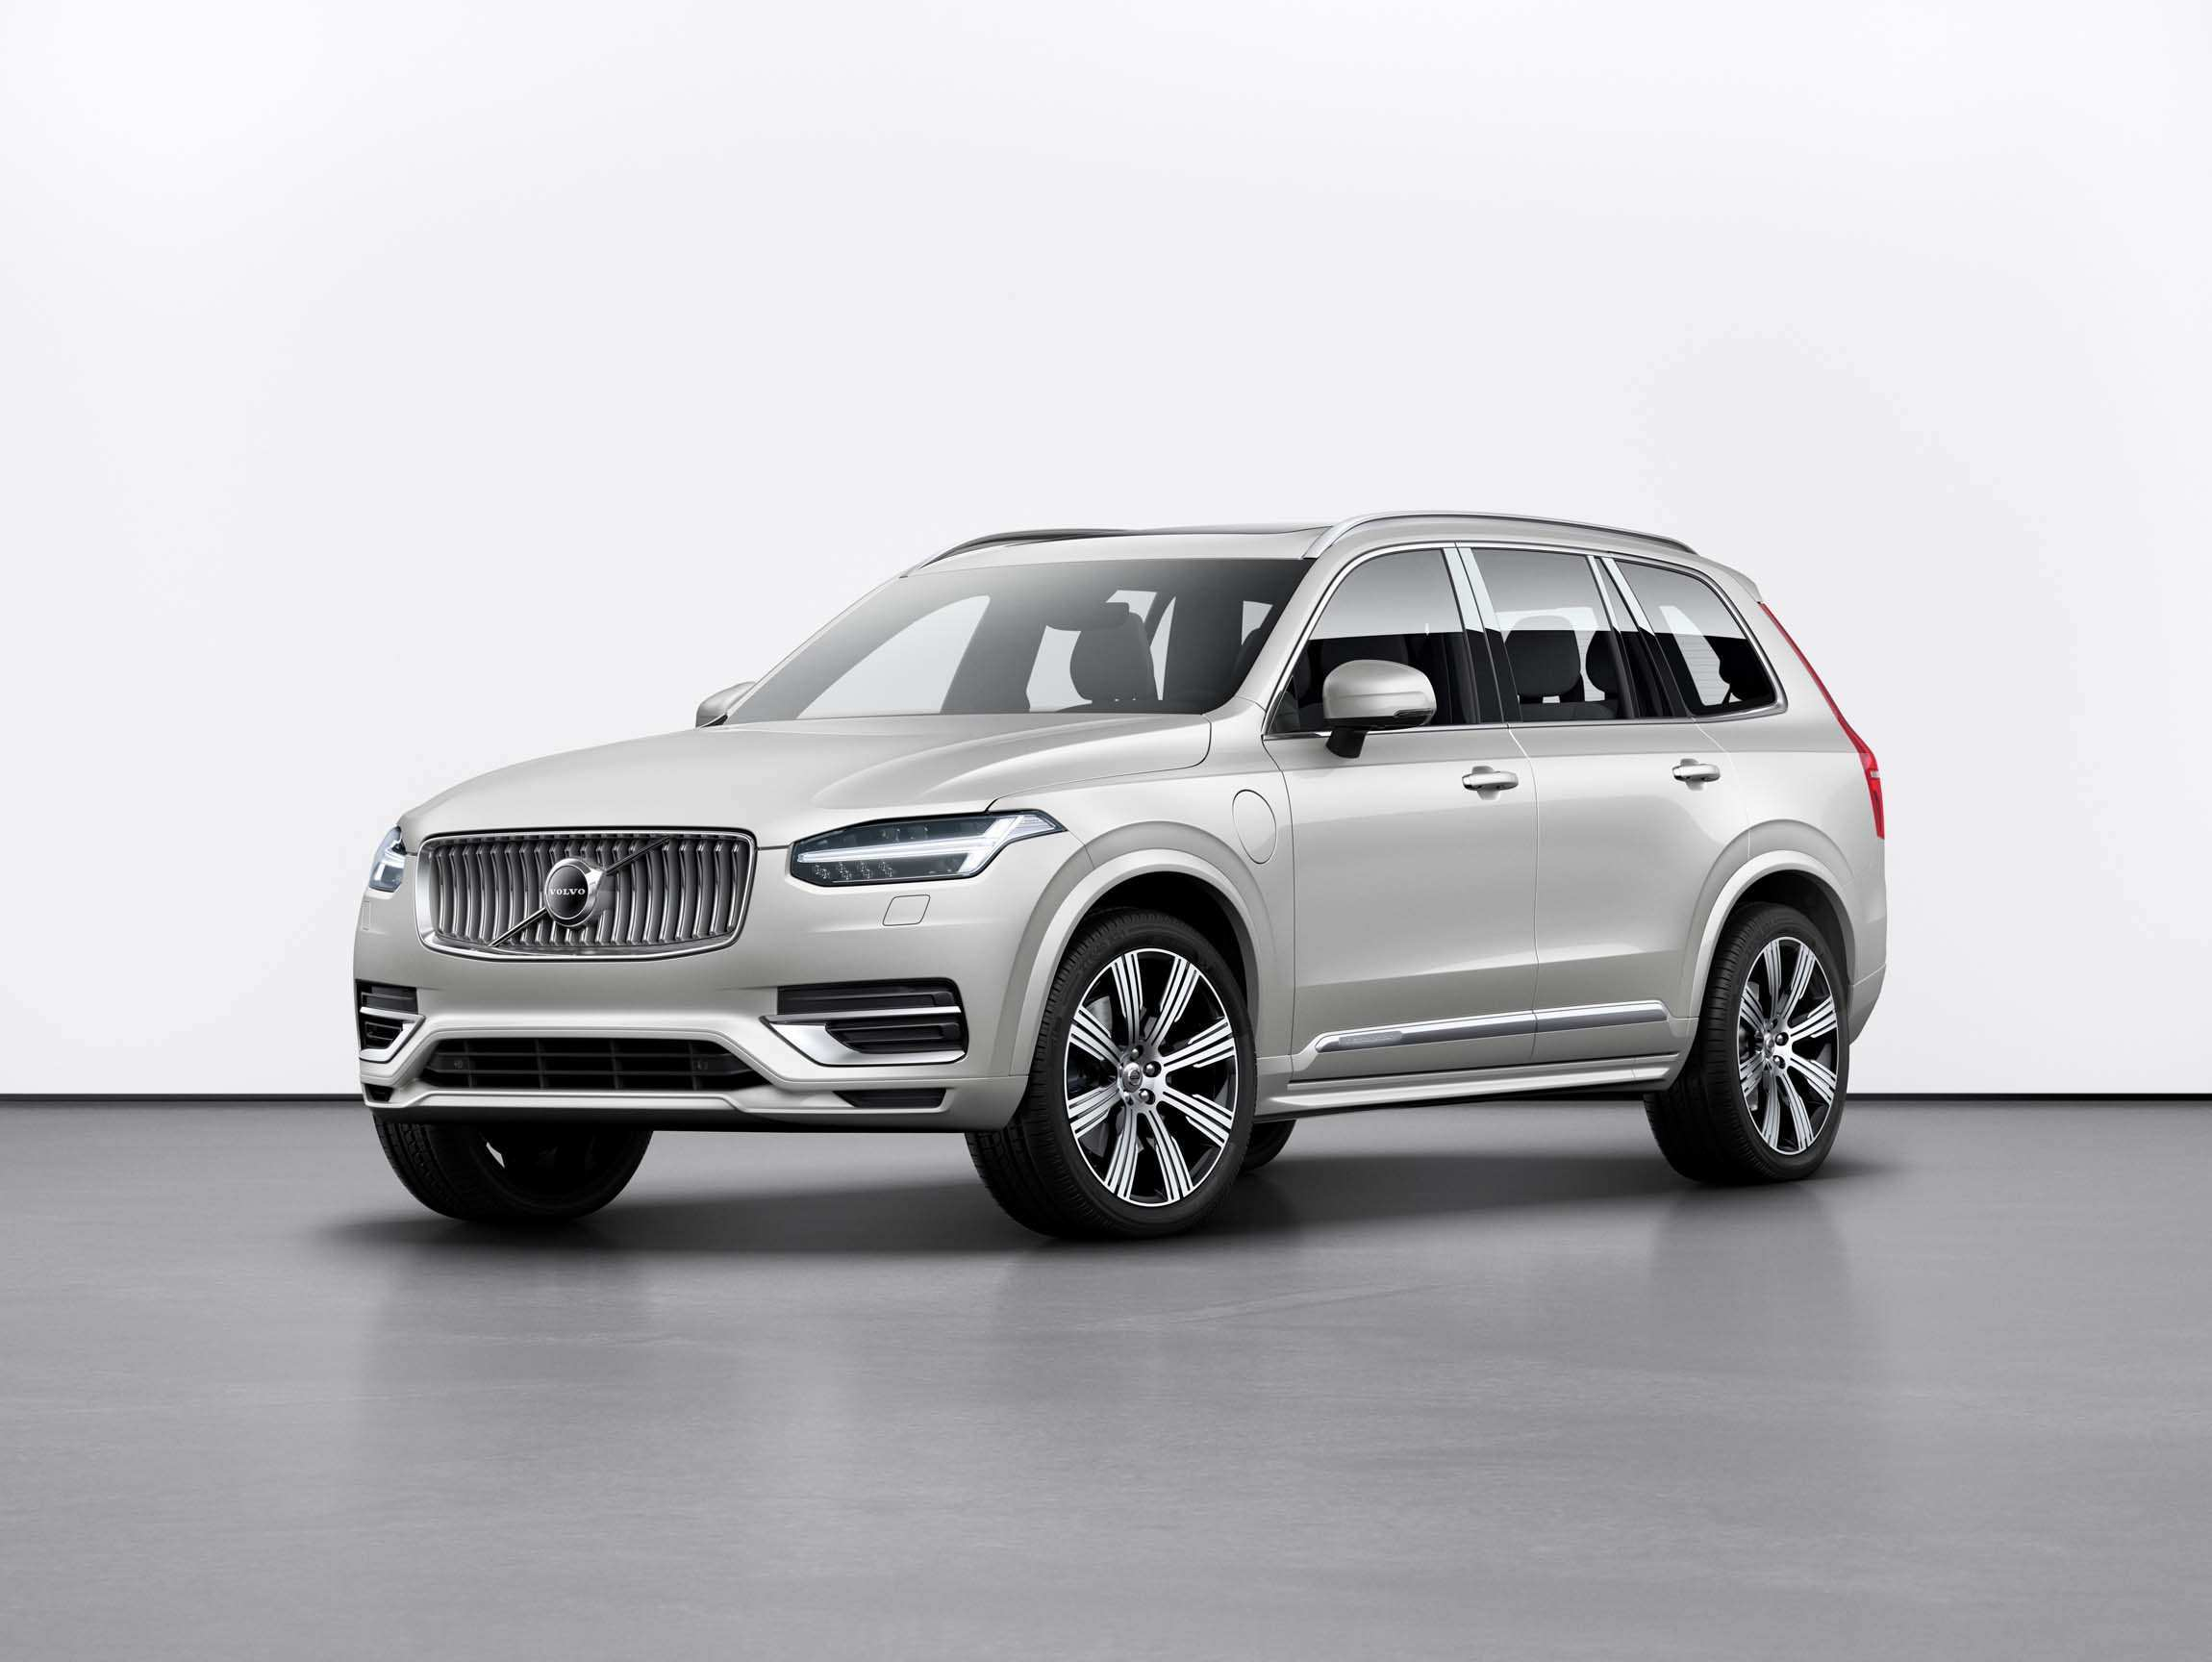 66 Gallery of Volvo Xc40 2020 Update Exterior and Interior with Volvo Xc40 2020 Update